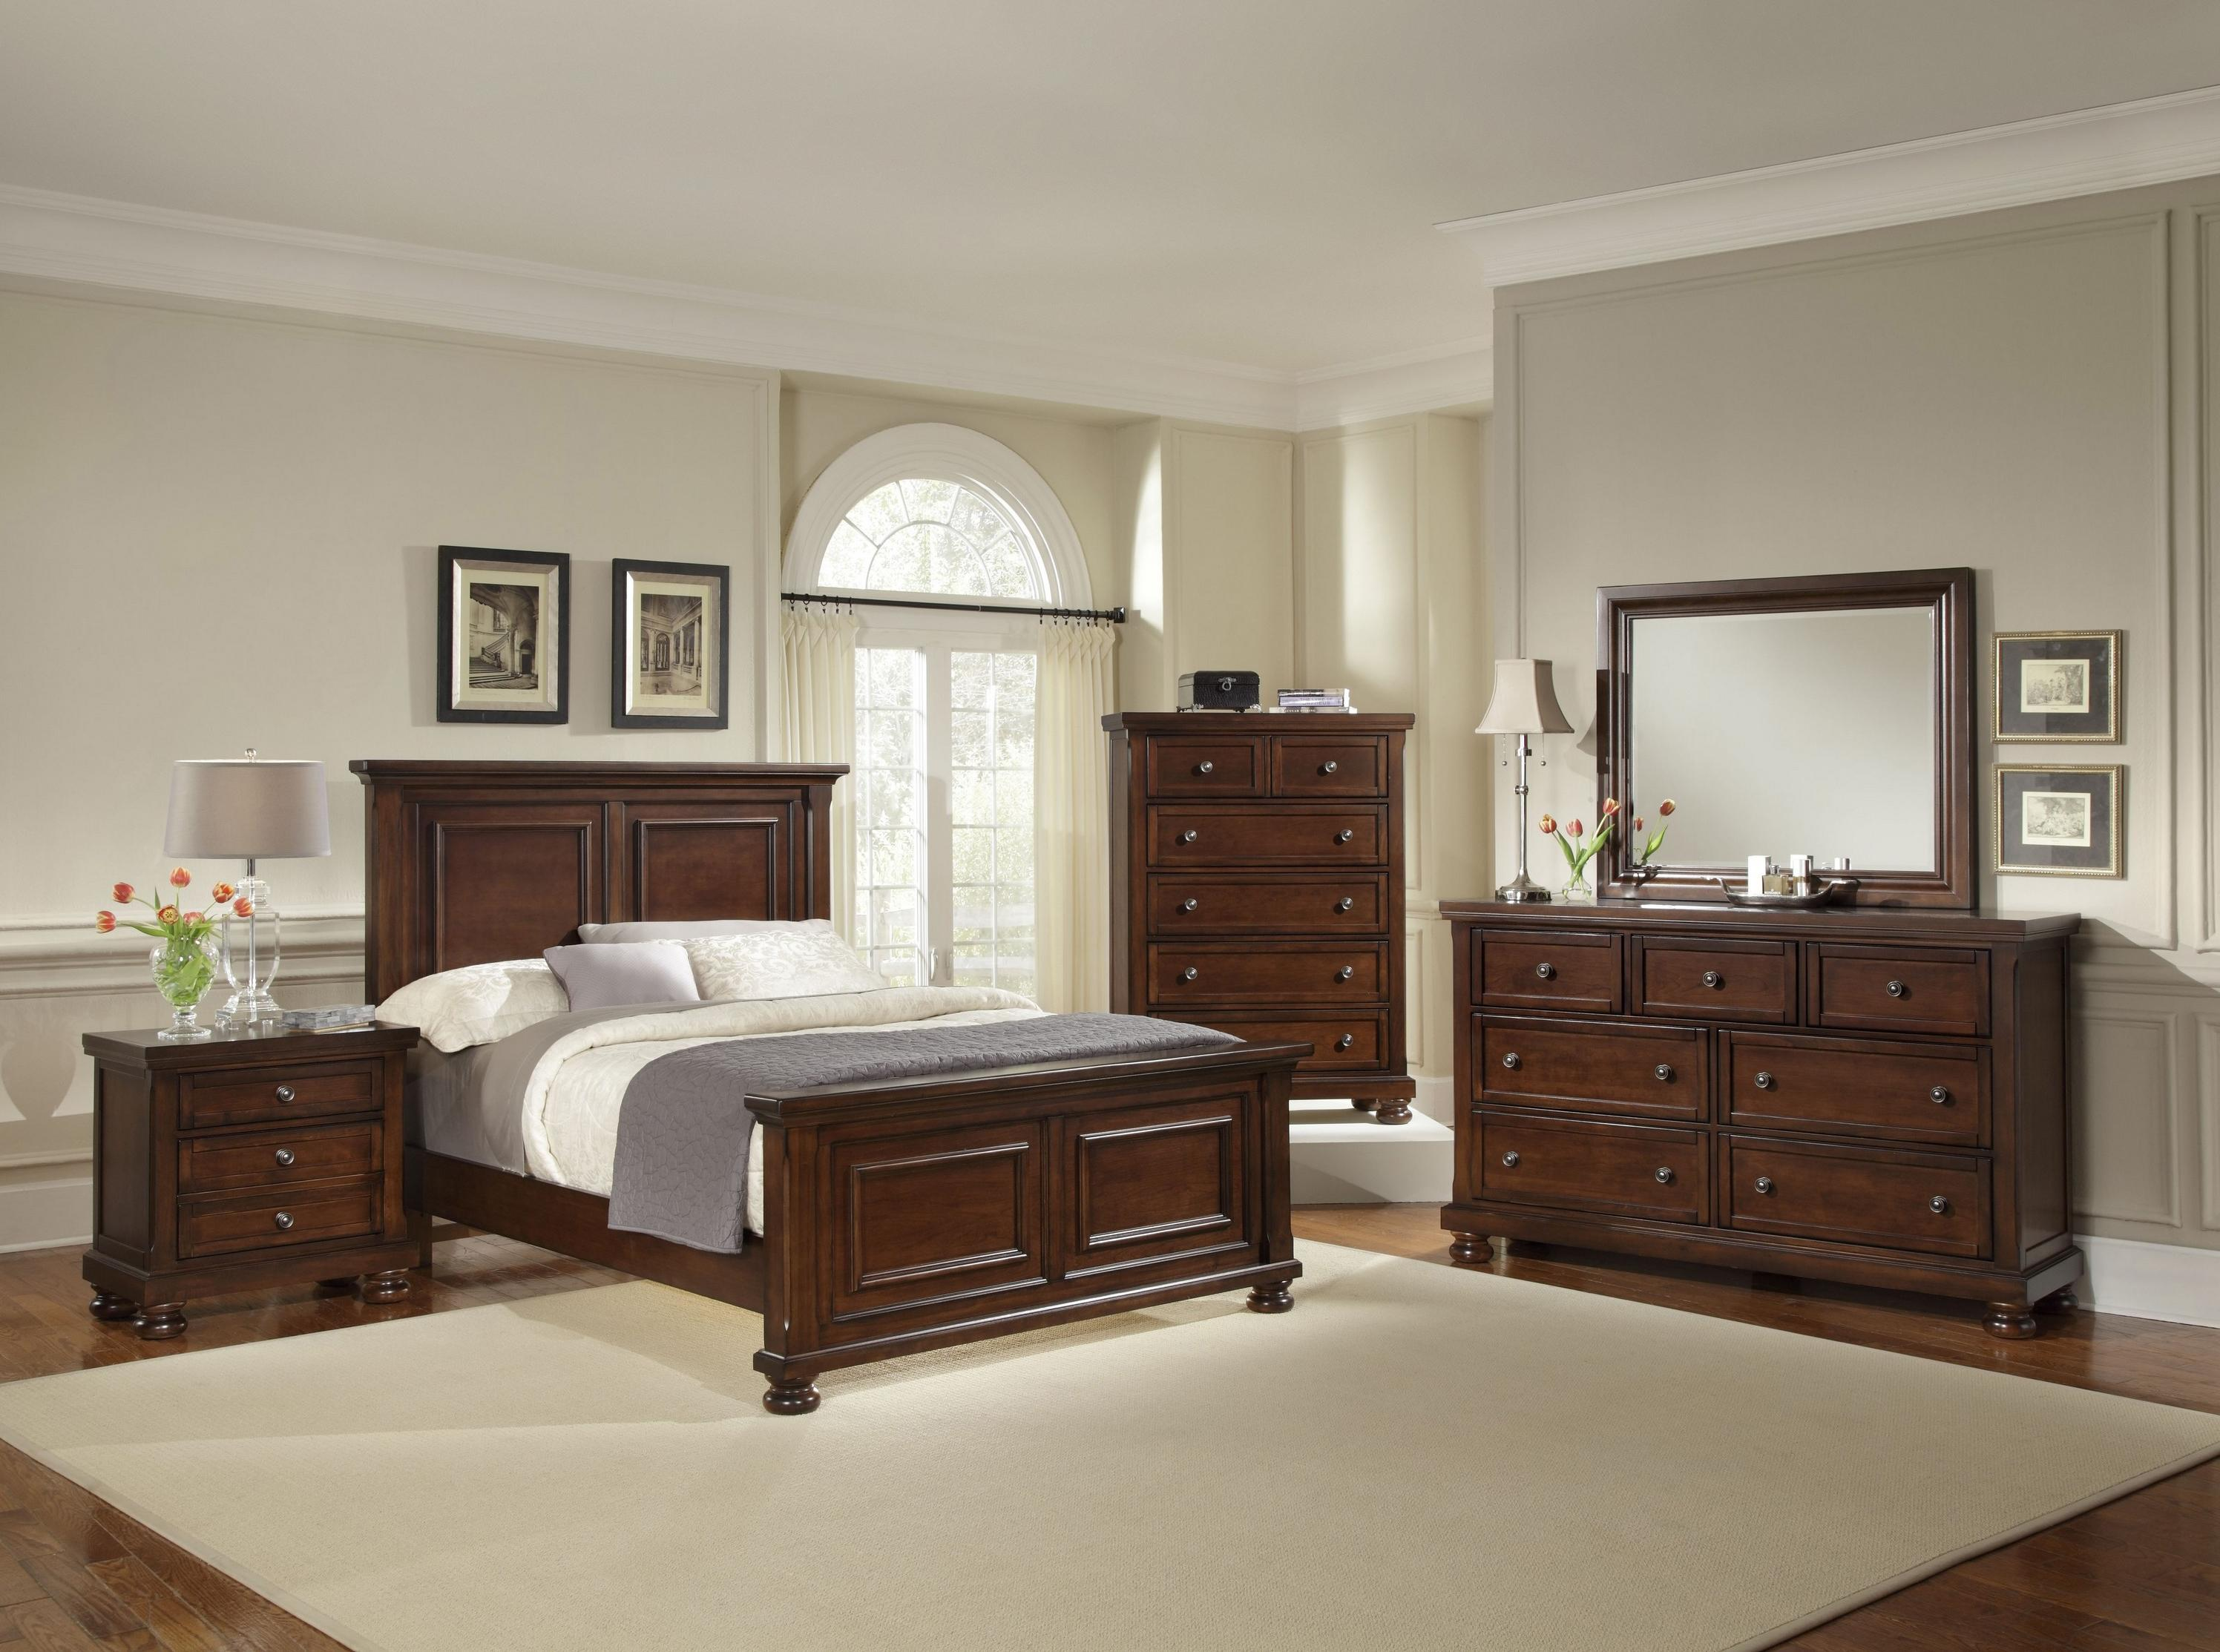 Vaughan Bassett Reflections King Bedroom Group - Item Number: 530 K Bedroom Group 2